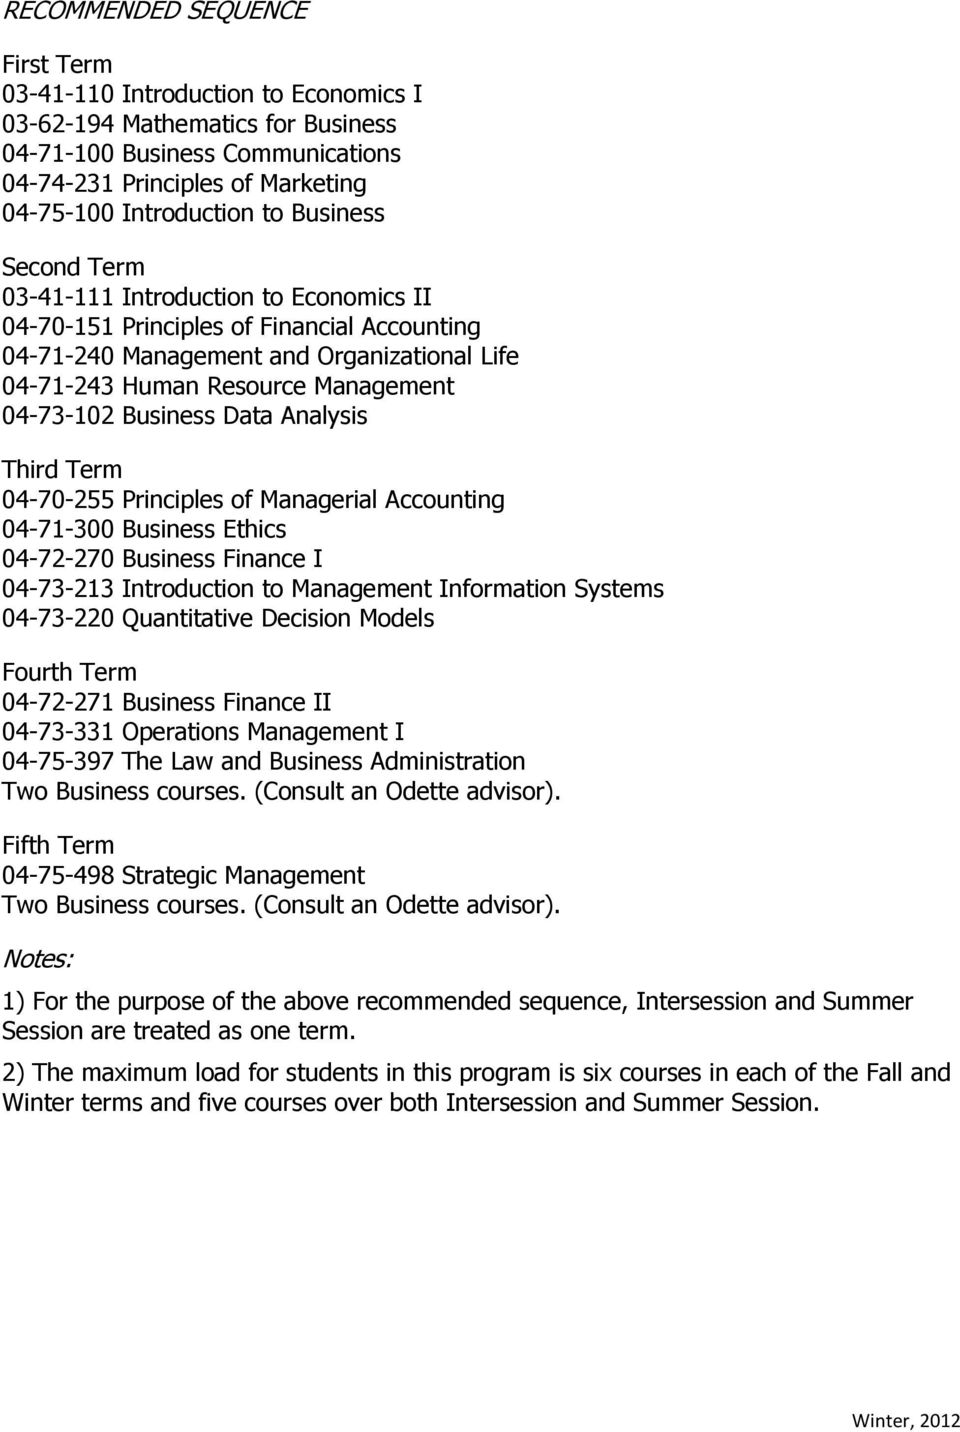 Business Finance I 04-73-213 Introduction to Management Information Systems 04-73-220 Quantitative Decision Models Fourth Term 04-72-271 Business Finance II 04-73-331 Operations Management I